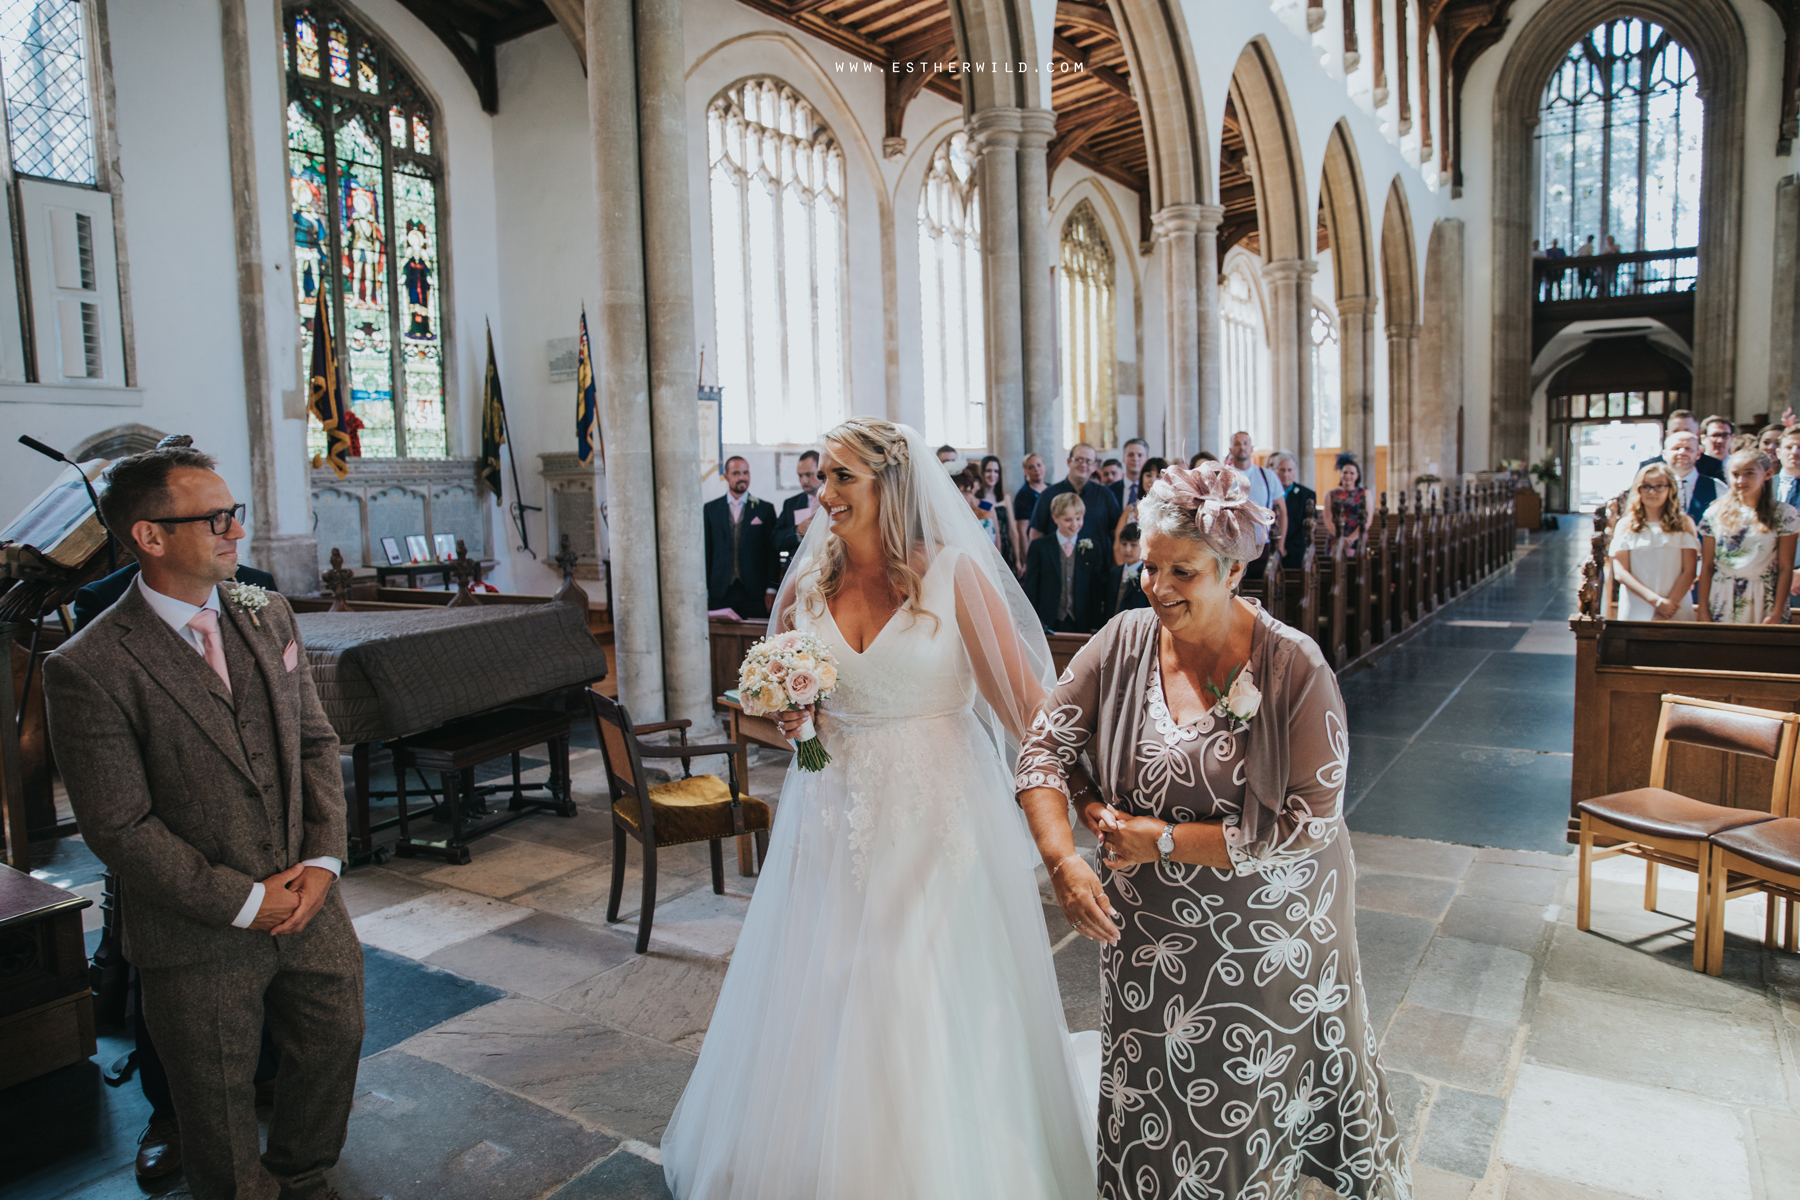 Swaffham_Wedding_Castle_Acre_Norfolk_Esther_Wild_Photographer_Wedding_Photography_3R8A0623.jpg